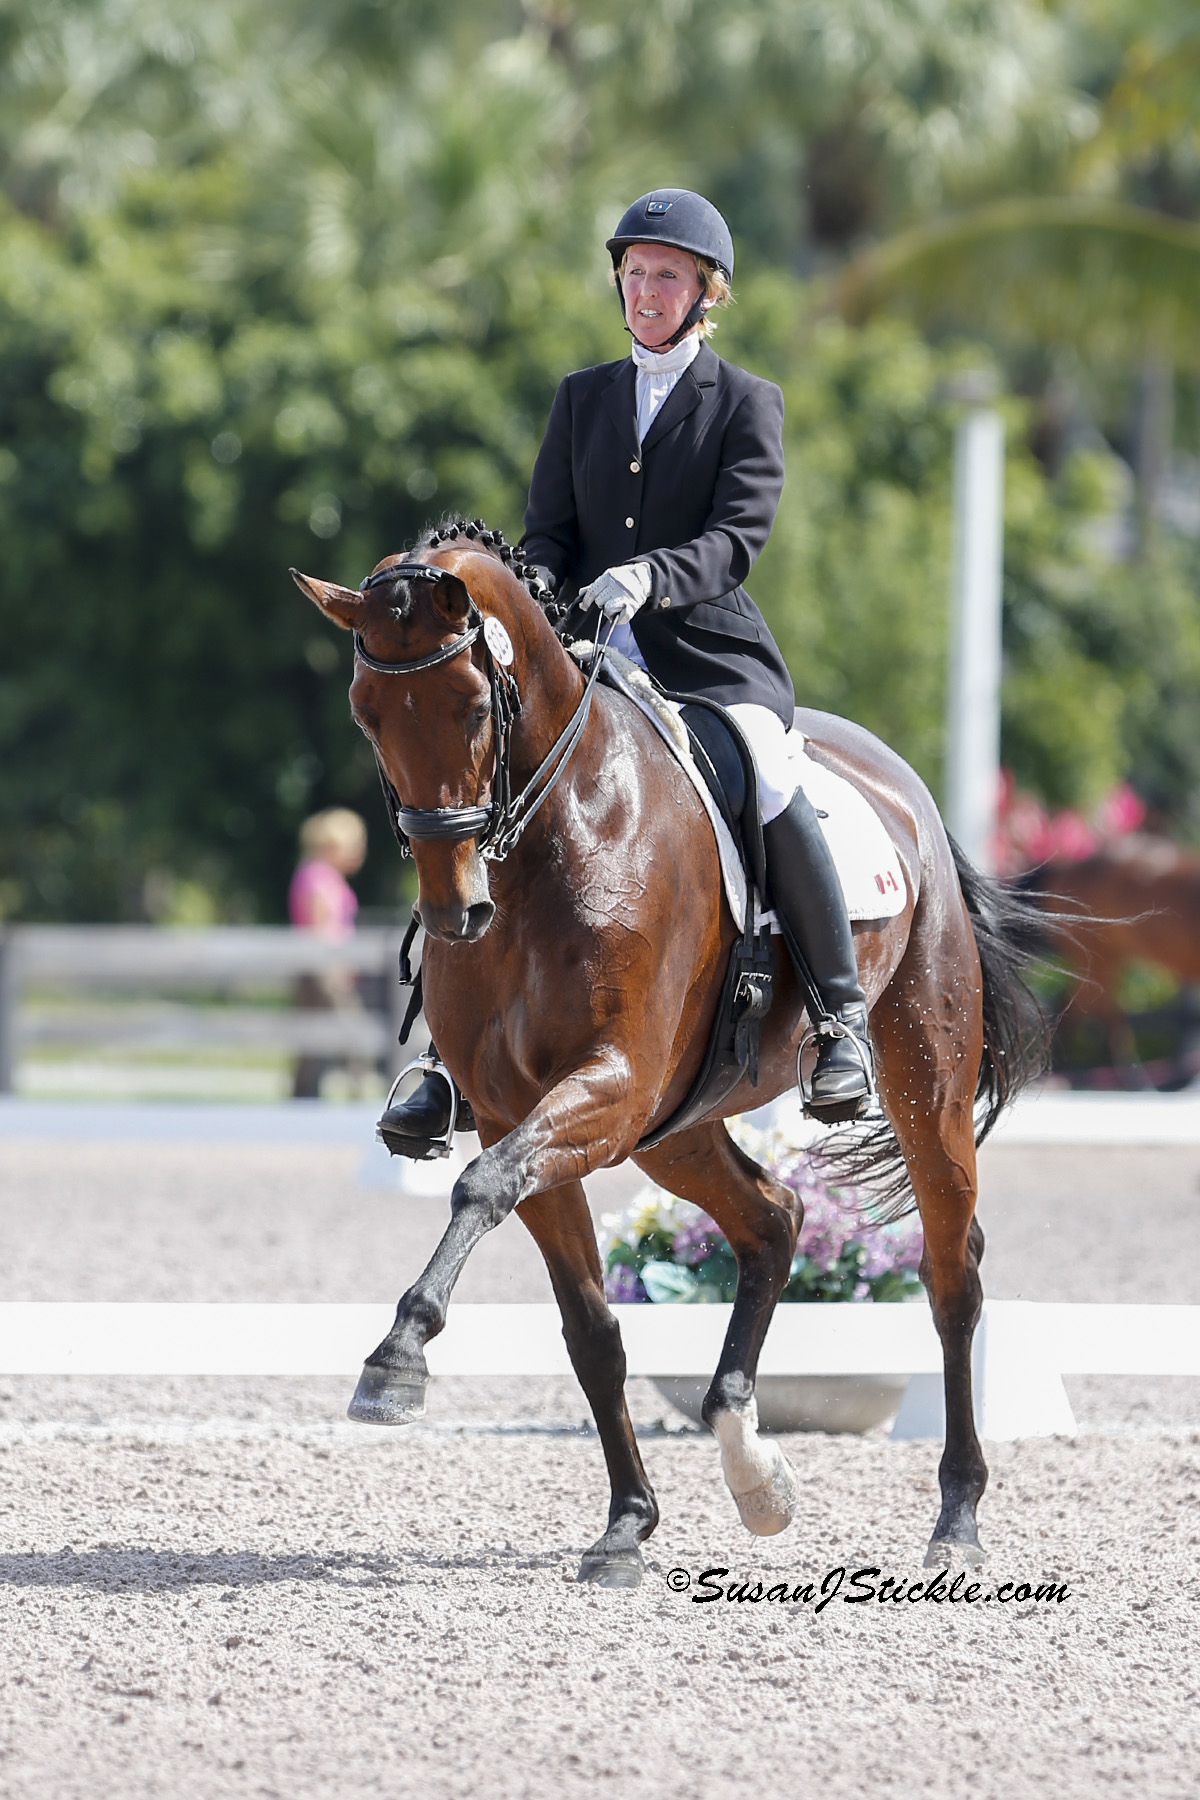 Diane Creech and Diana C at the Adequan Global Dressage Festival. Photo by Susan Stickle.